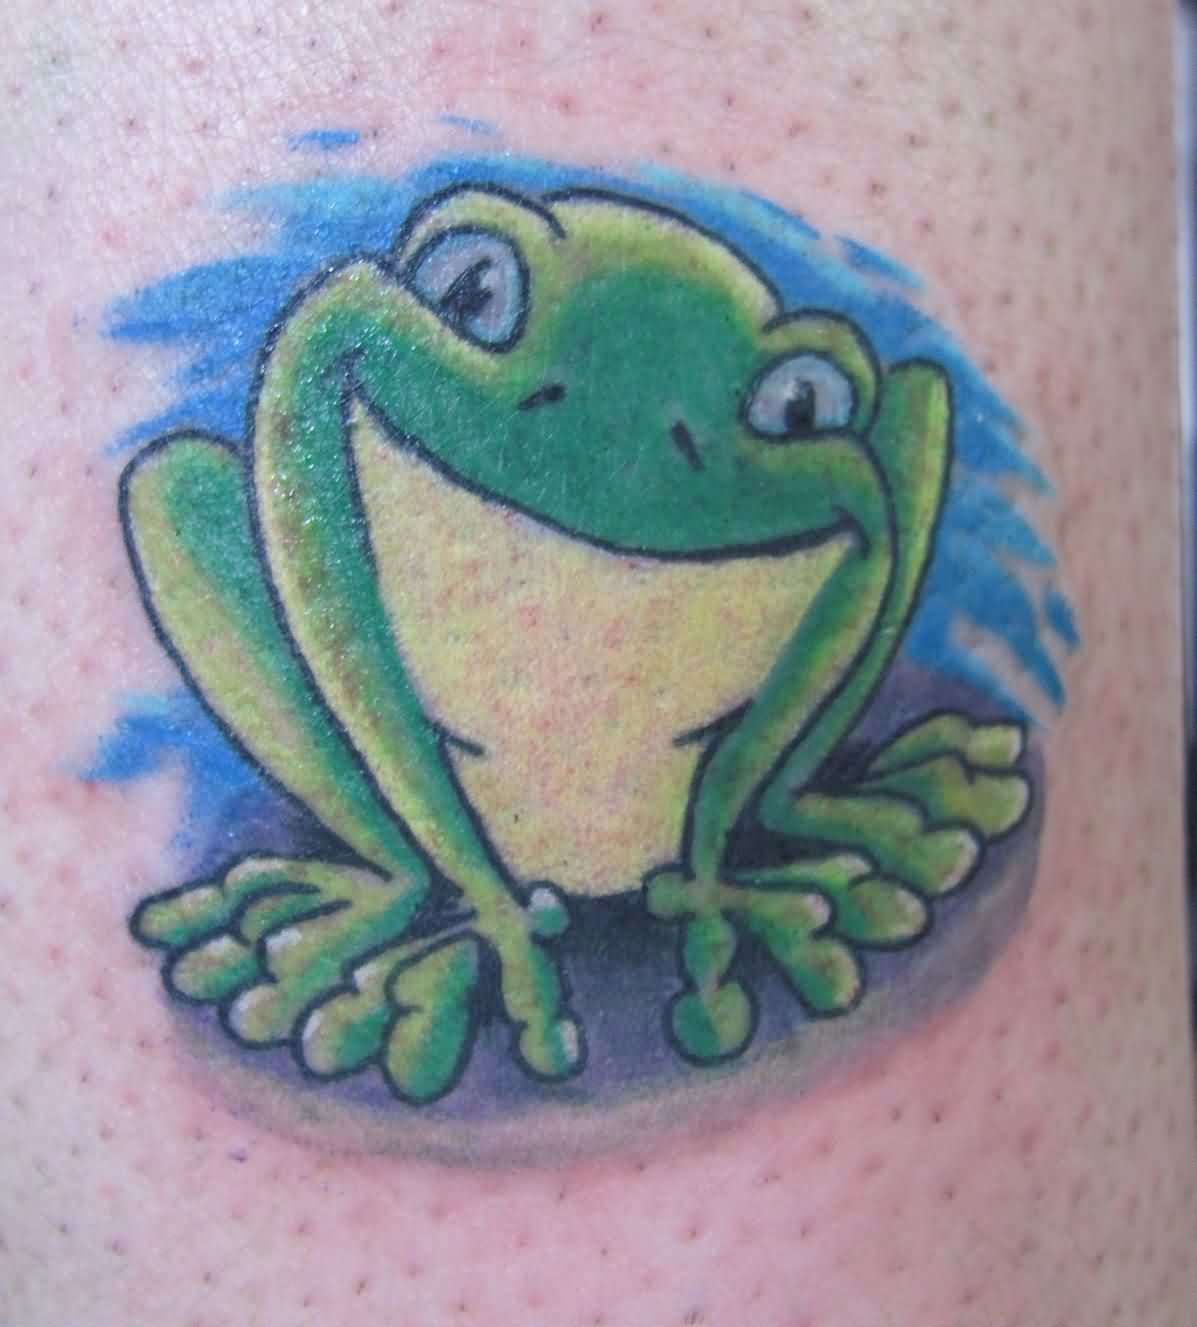 Funny Green Frog Tattoo